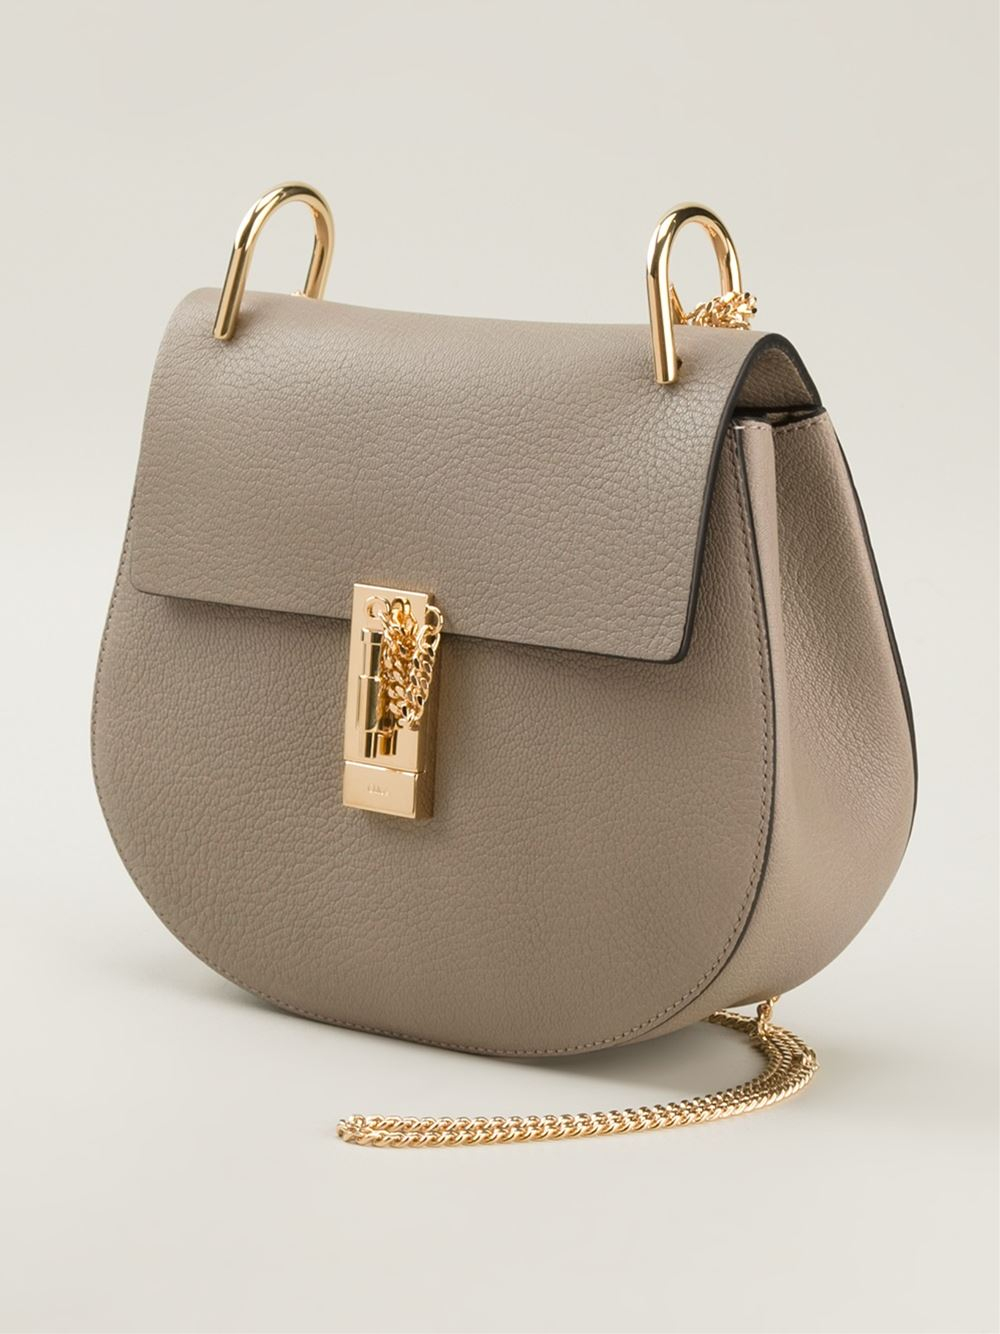 pink chloe bag - chloe grey medium drew saddle bag, chloe paraty replica